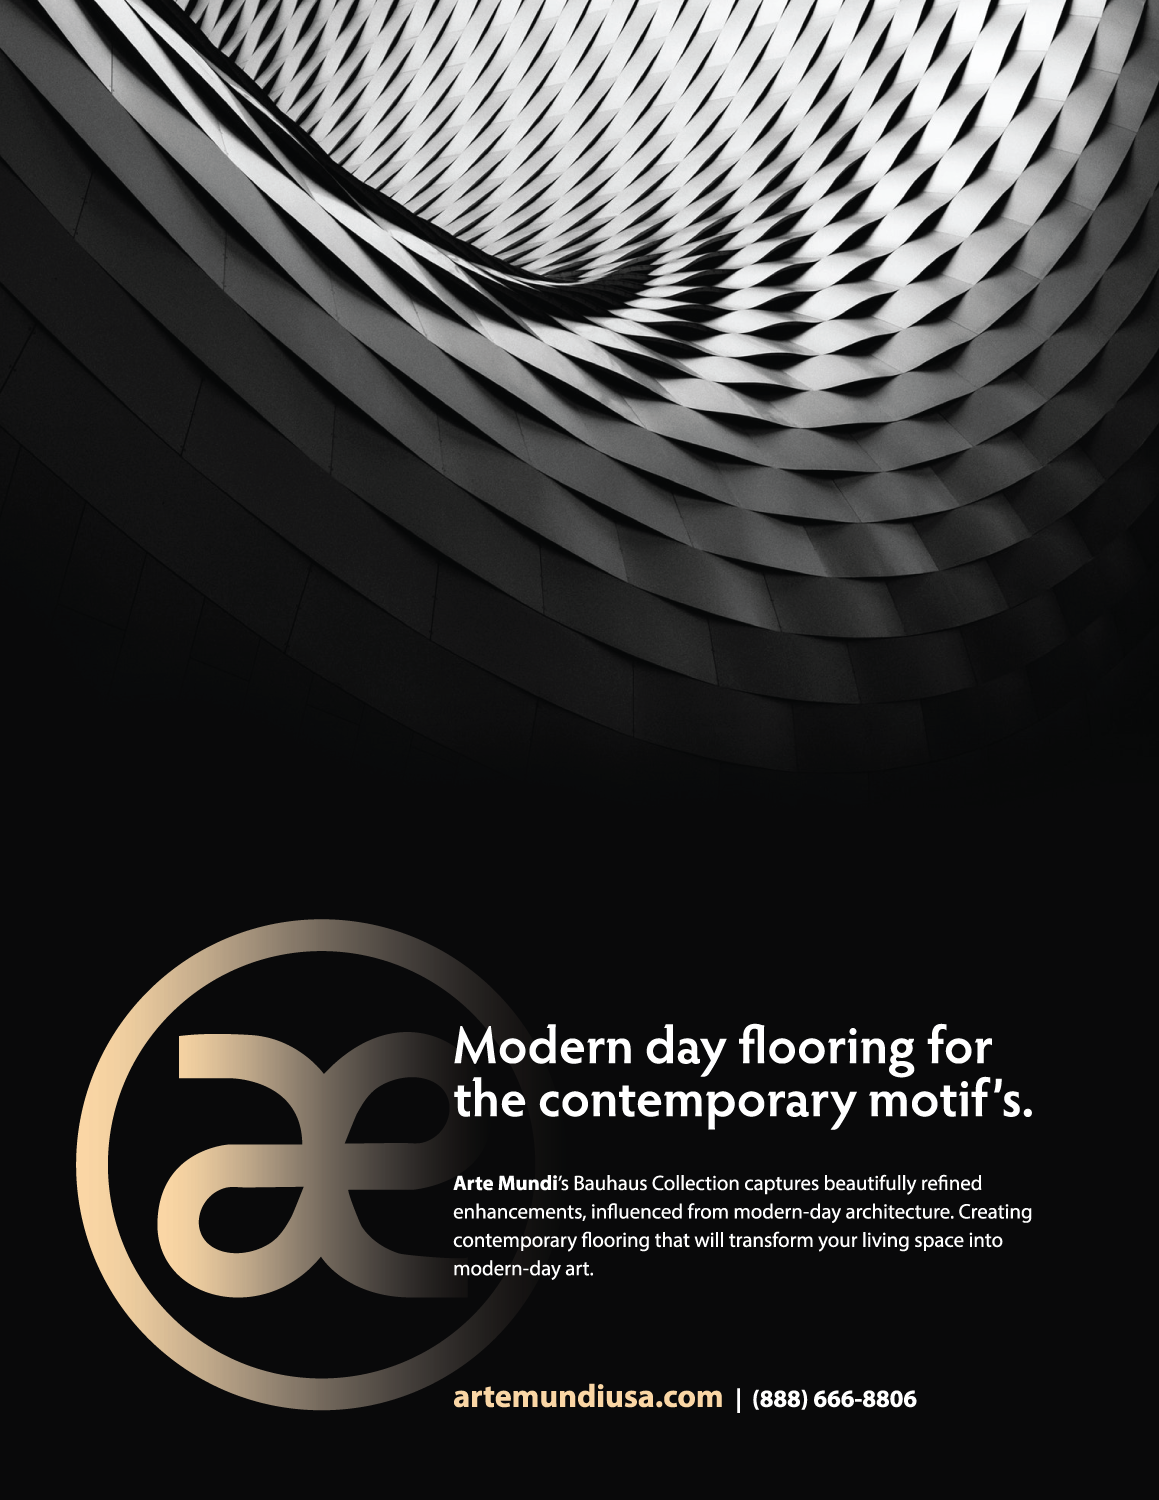 In this month's issue of Floor Covering News, we feature a glimpse of inspiration Arte Mundi uses in its influence for the Bauhaus Collection.